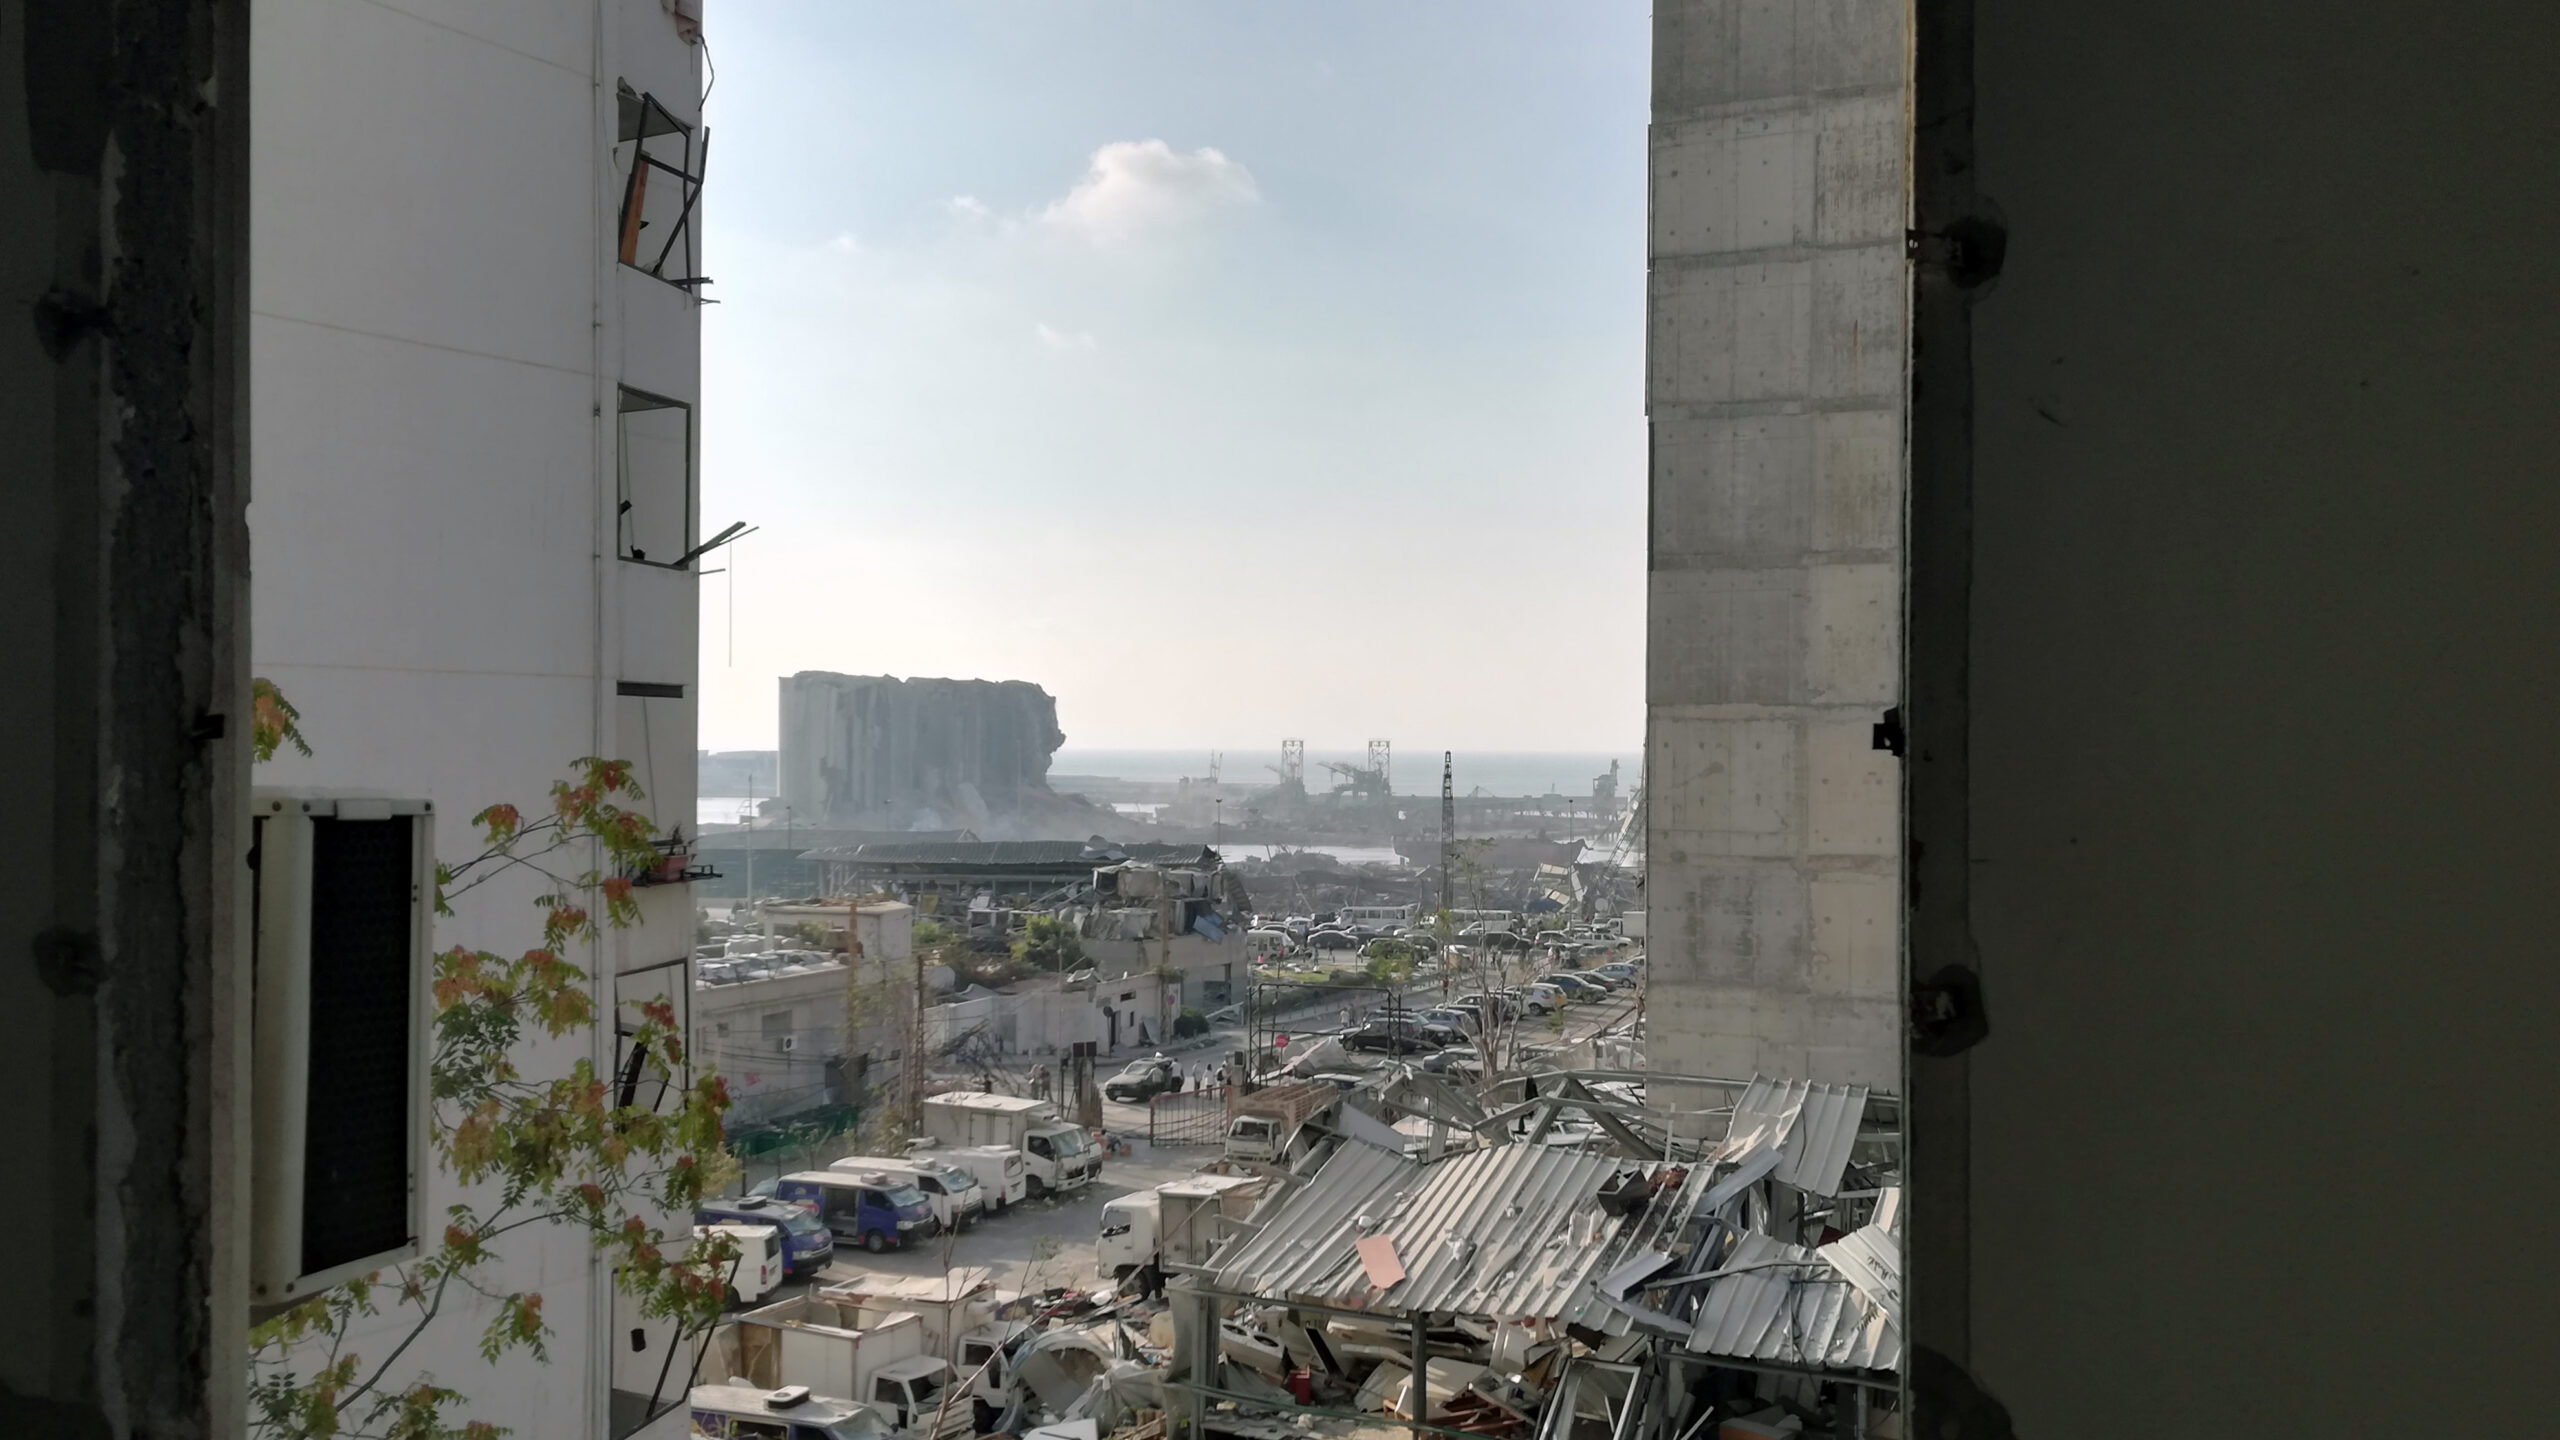 Reconstruction article: The Beirut port as seen through the shattered window of a nearby home after the explosion that decimated the Lebanese capital (Photo: Michael Abounabhan)